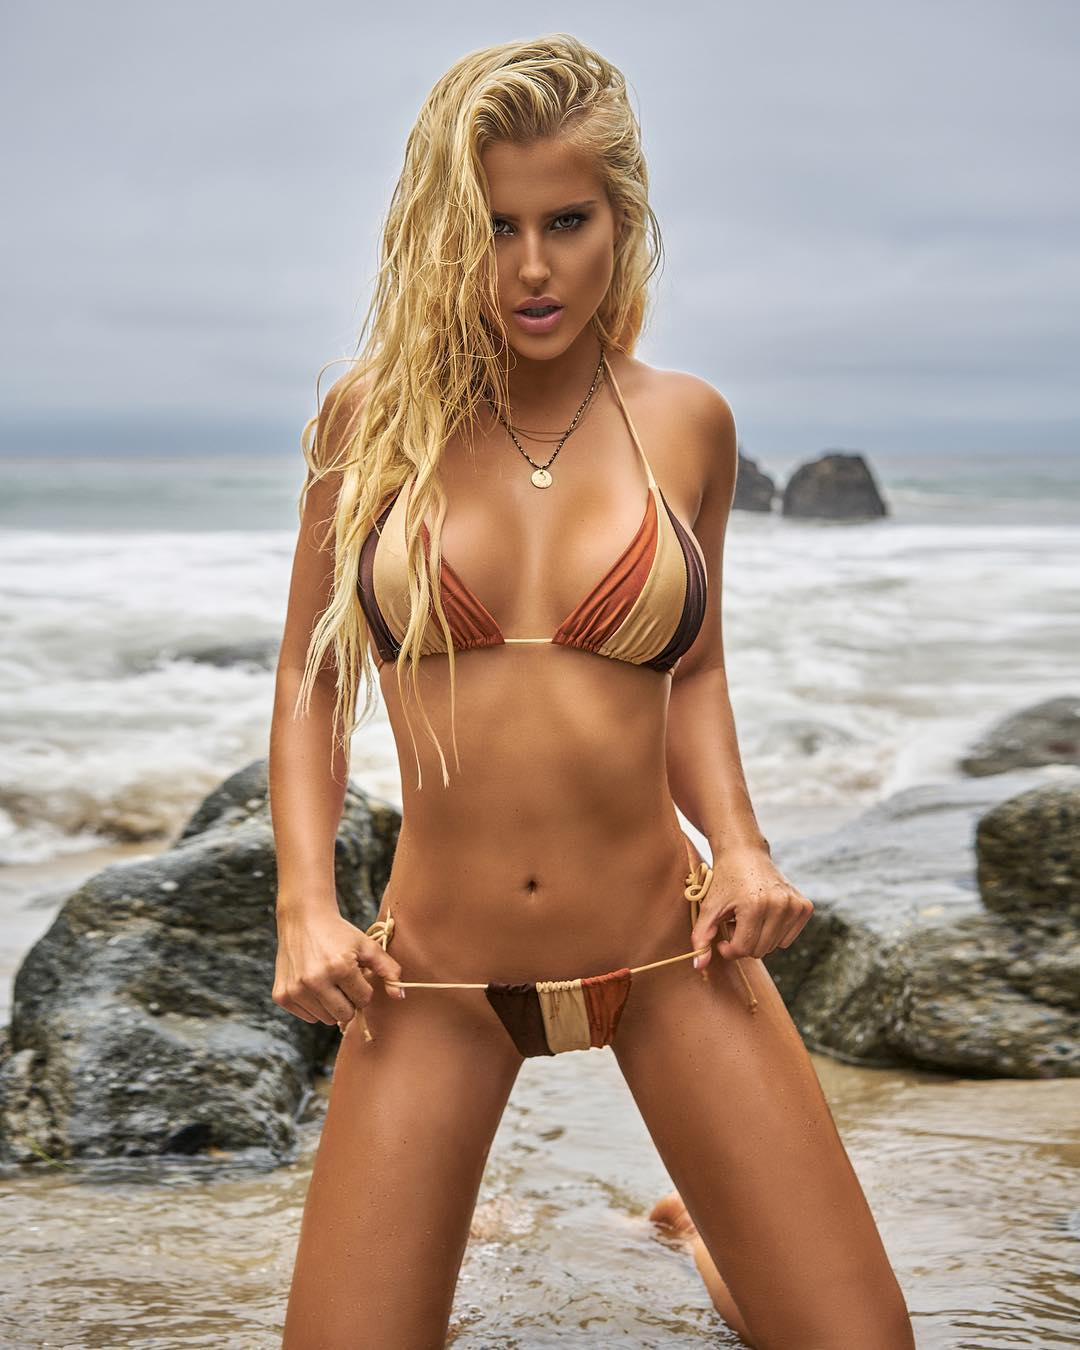 Brennah Black Bikini Wheat Skin Picture and Photo